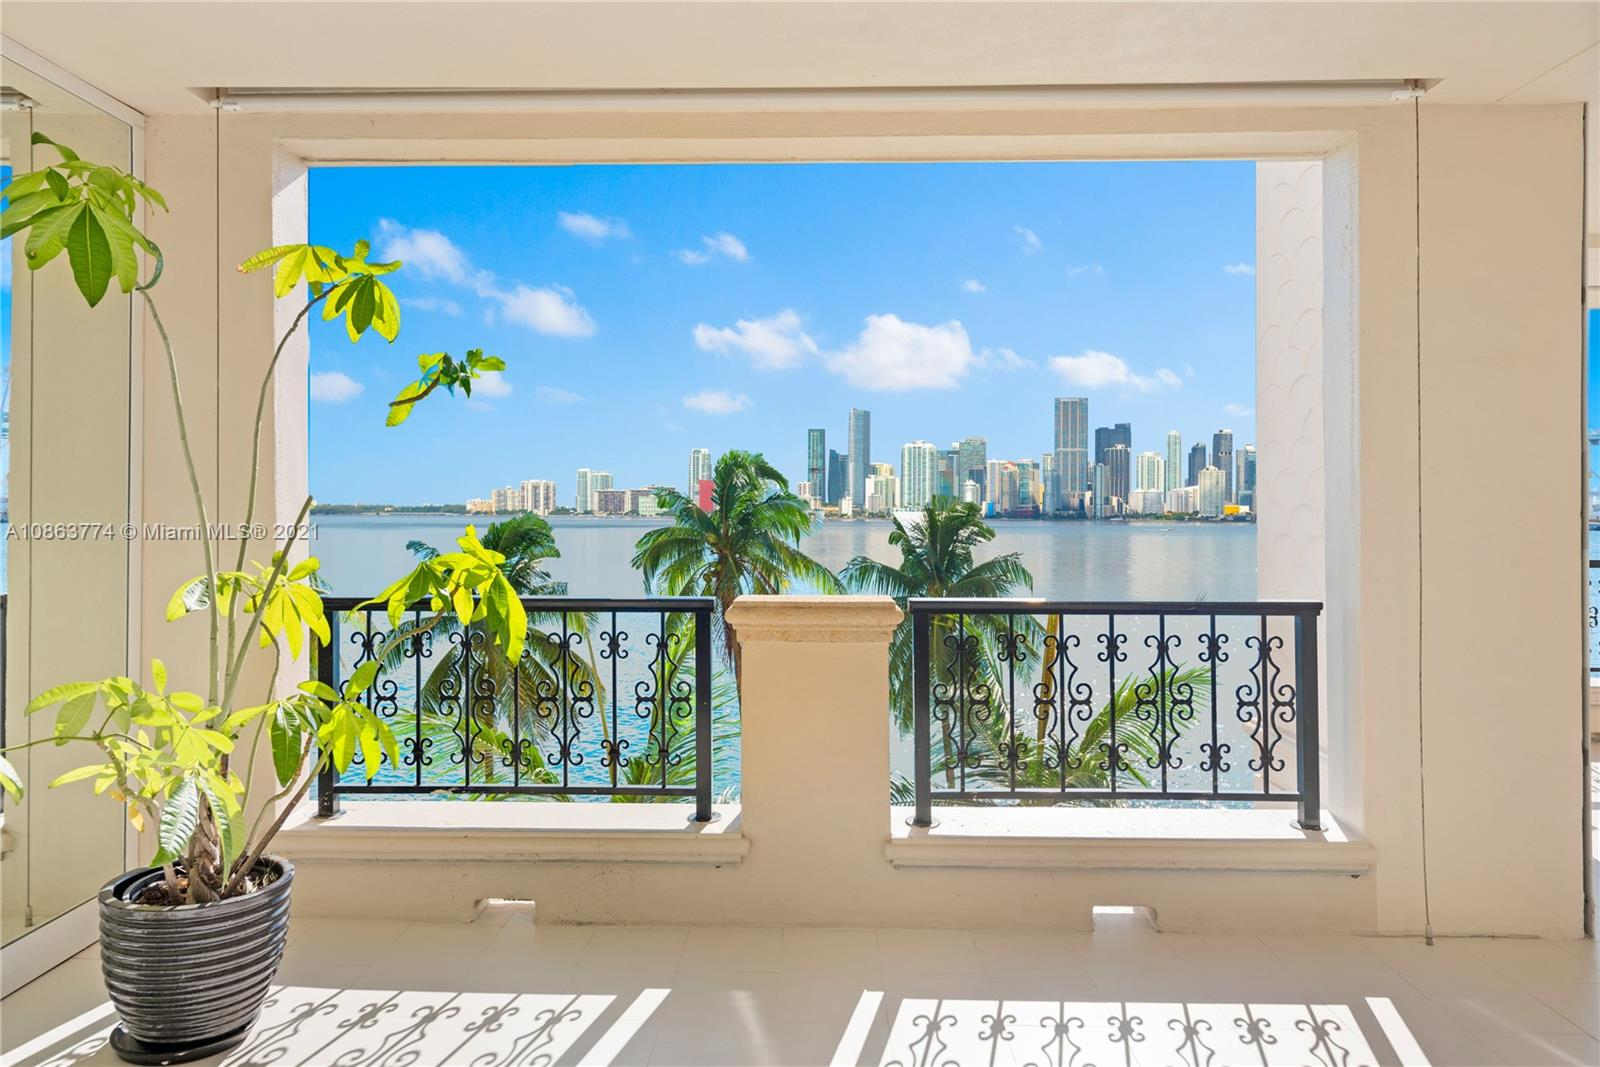 Live the Fisher Island lifestyle in this mesmerizing Bayview unit. Completely renovated with state of the art finishes. It showcases: 3,550 sq ft interior, 3 bedrooms + den, 3.5 baths, professionally designed & decorated offered fully furnished, open kitchen with top of the line appliances, wine cellar, formal dining room, master bedroom & guests bedrooms with a private terraces, media room, impact glass doors, smart house system, expansive terraces overlooking the Miami downtown skyline and Biscayne Bay perfect to admire beautiful sunsets! Enjoy living in this one of a kind oasis! Easy to show.